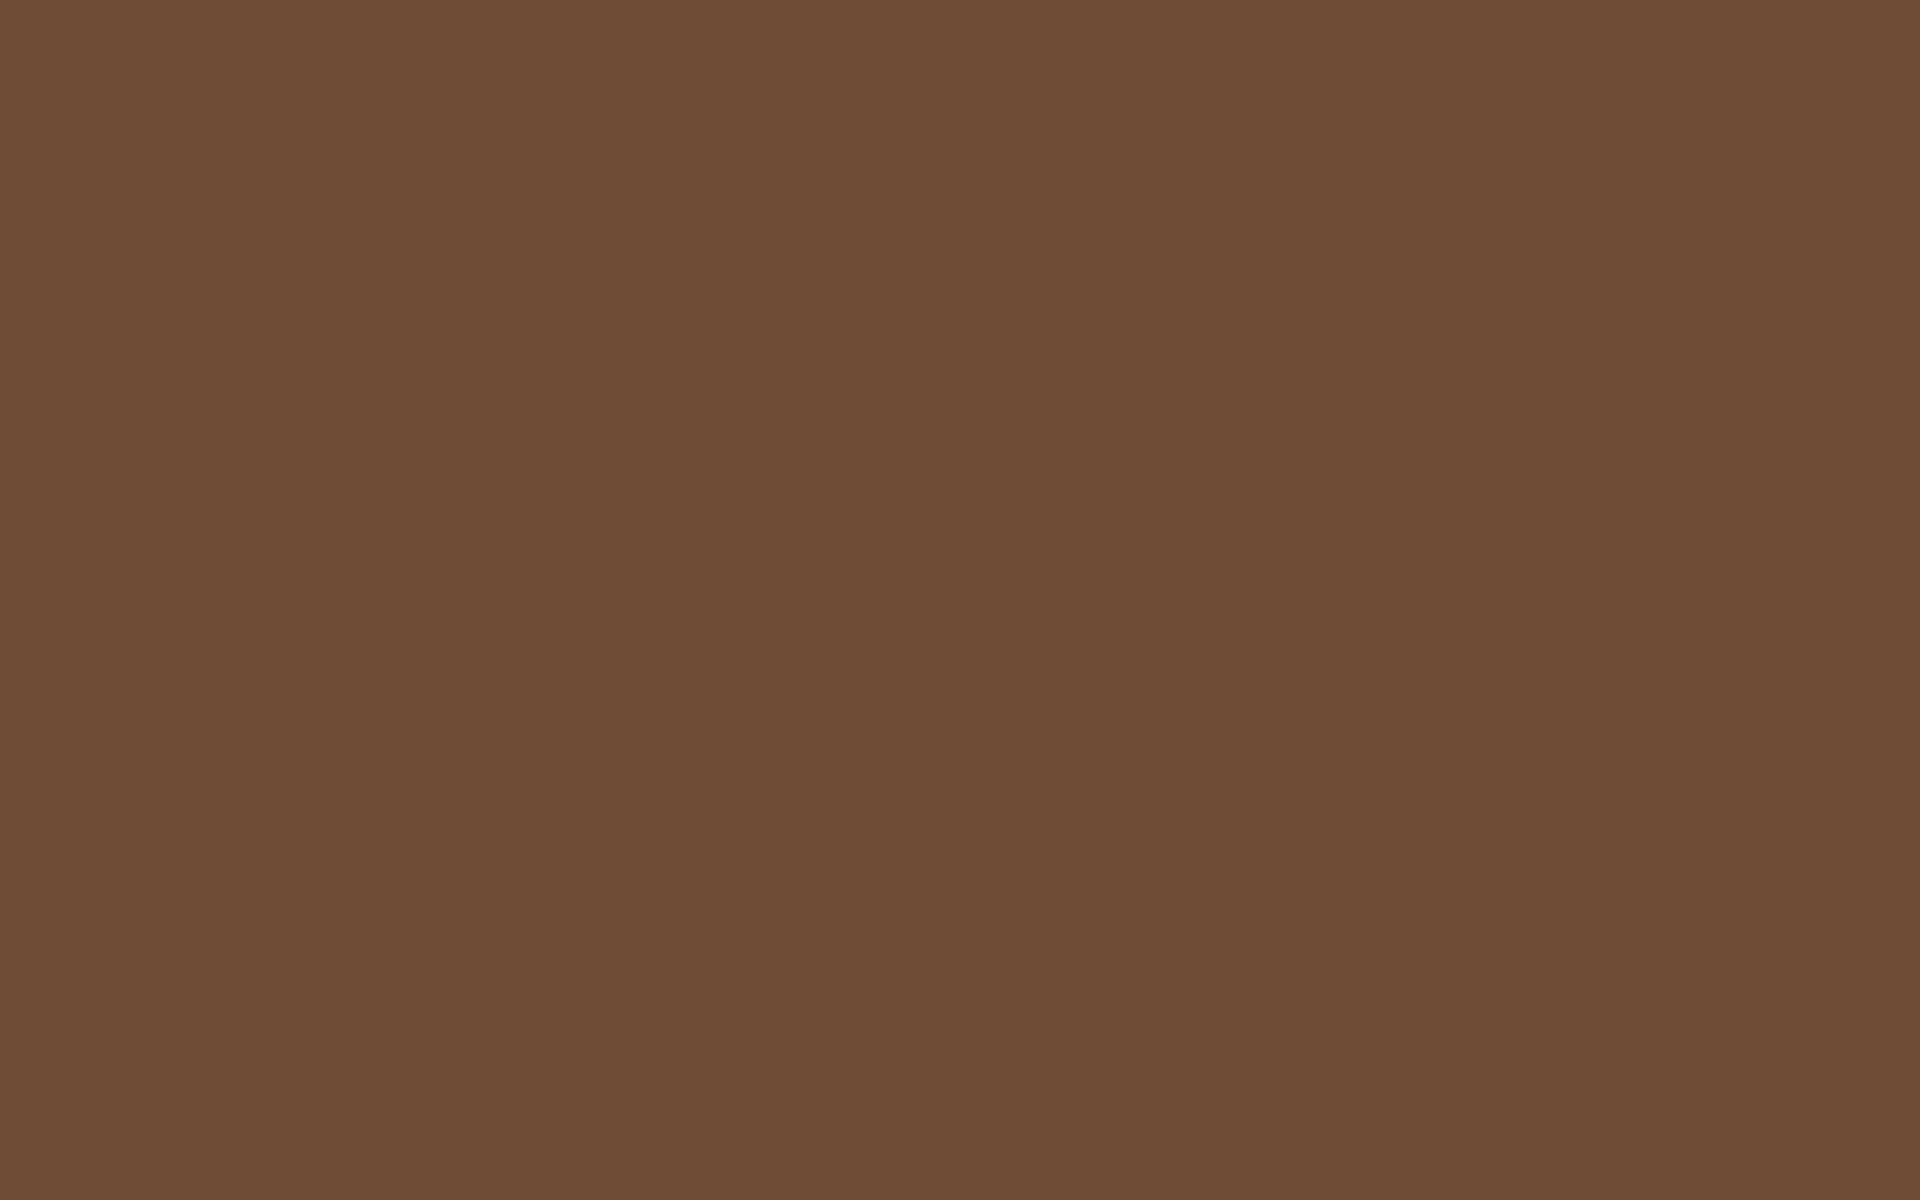 1920x1200 Tuscan Brown Solid Color Background